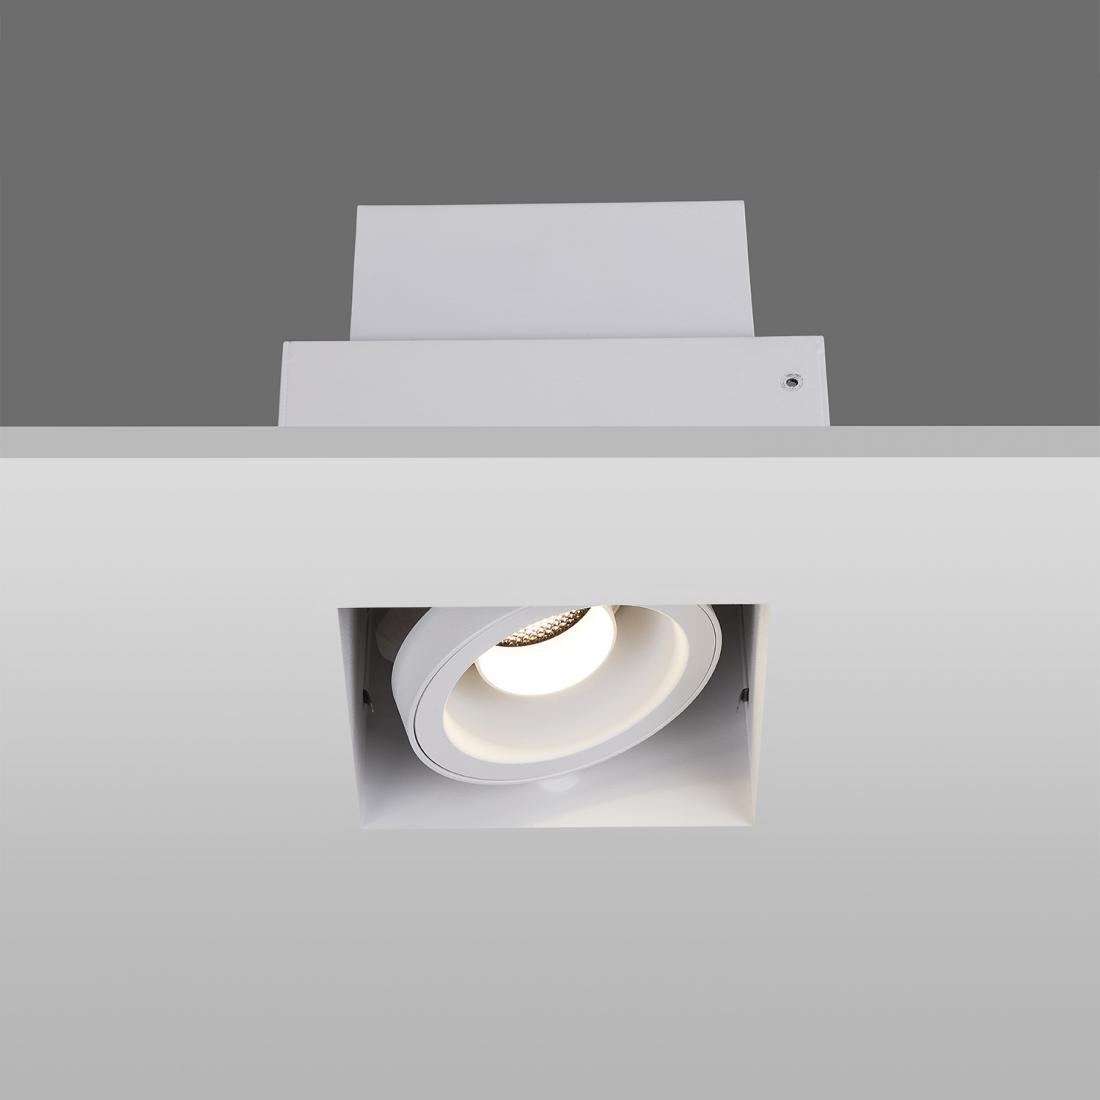 Interior recessed downlight